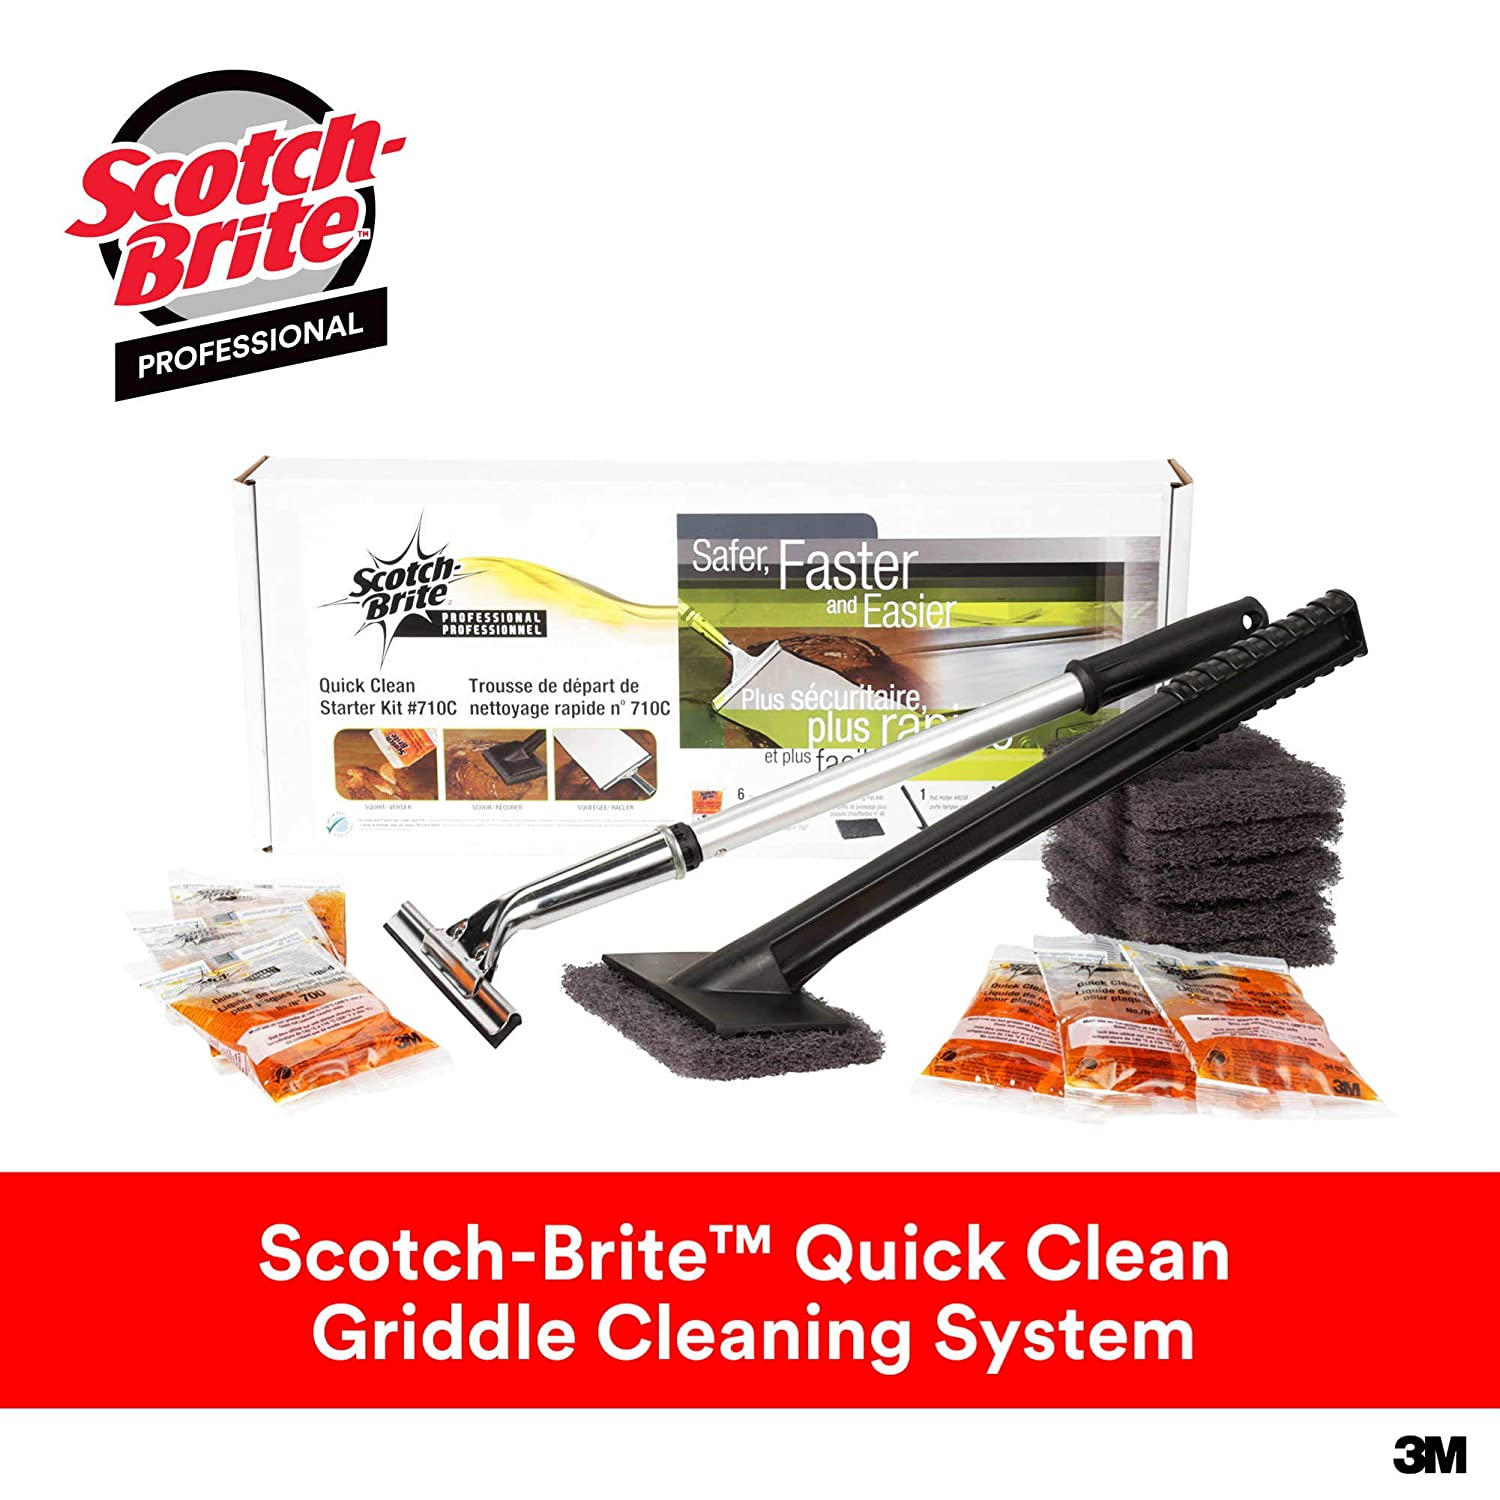 3M Grill, Griddle and Fryer Cleaners Scotch-Brite Quick Clean Griddle System Starter Kit